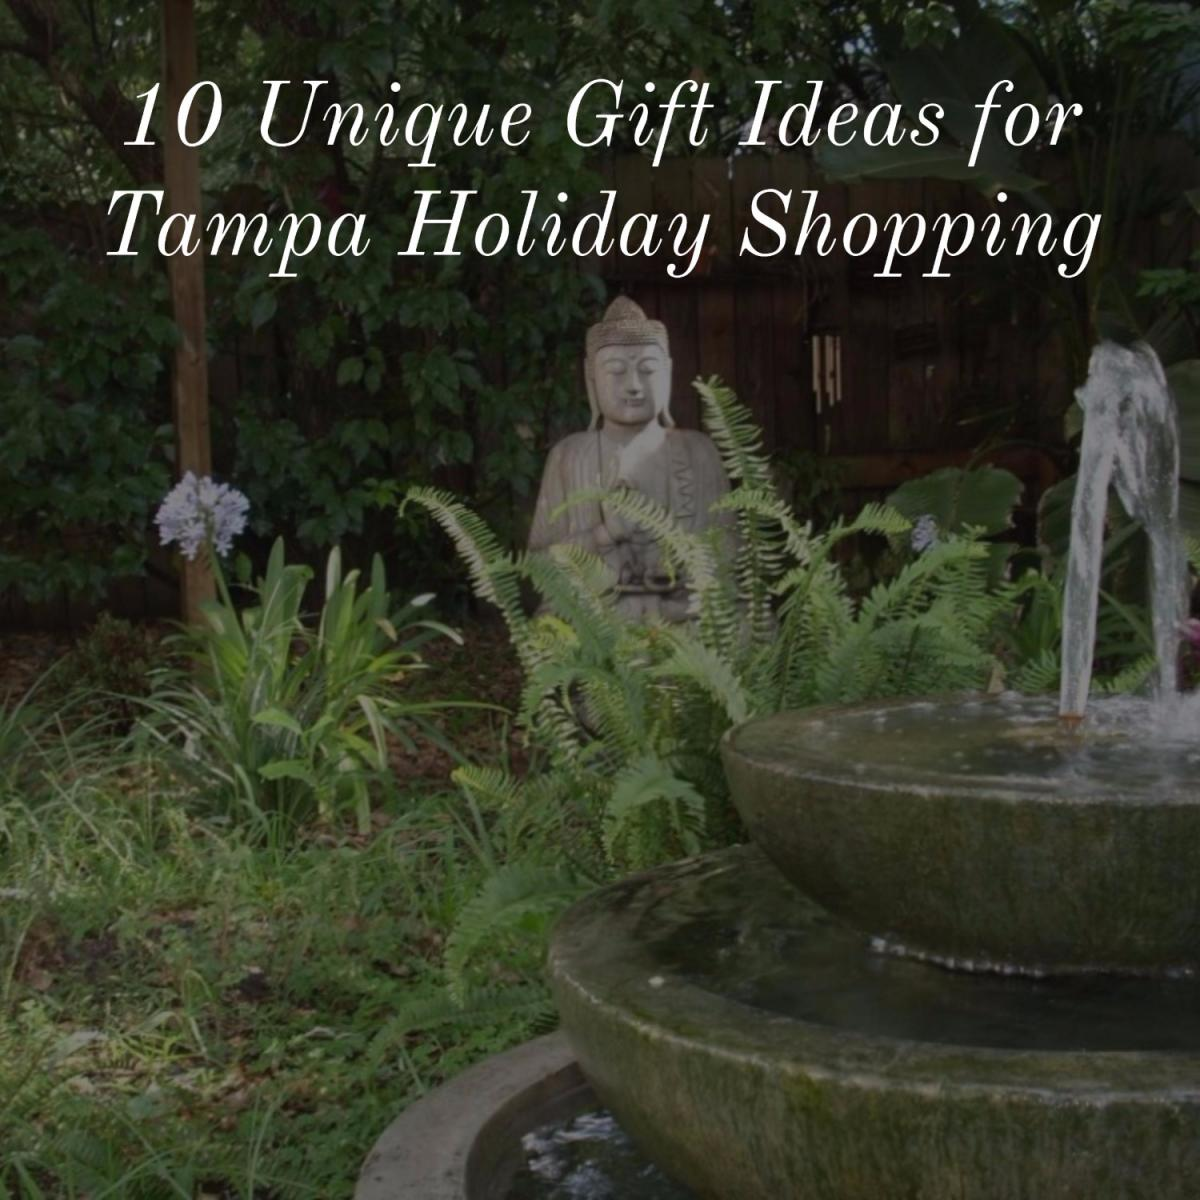 10 Unique Gift Ideas for Tampa Holiday Shopping